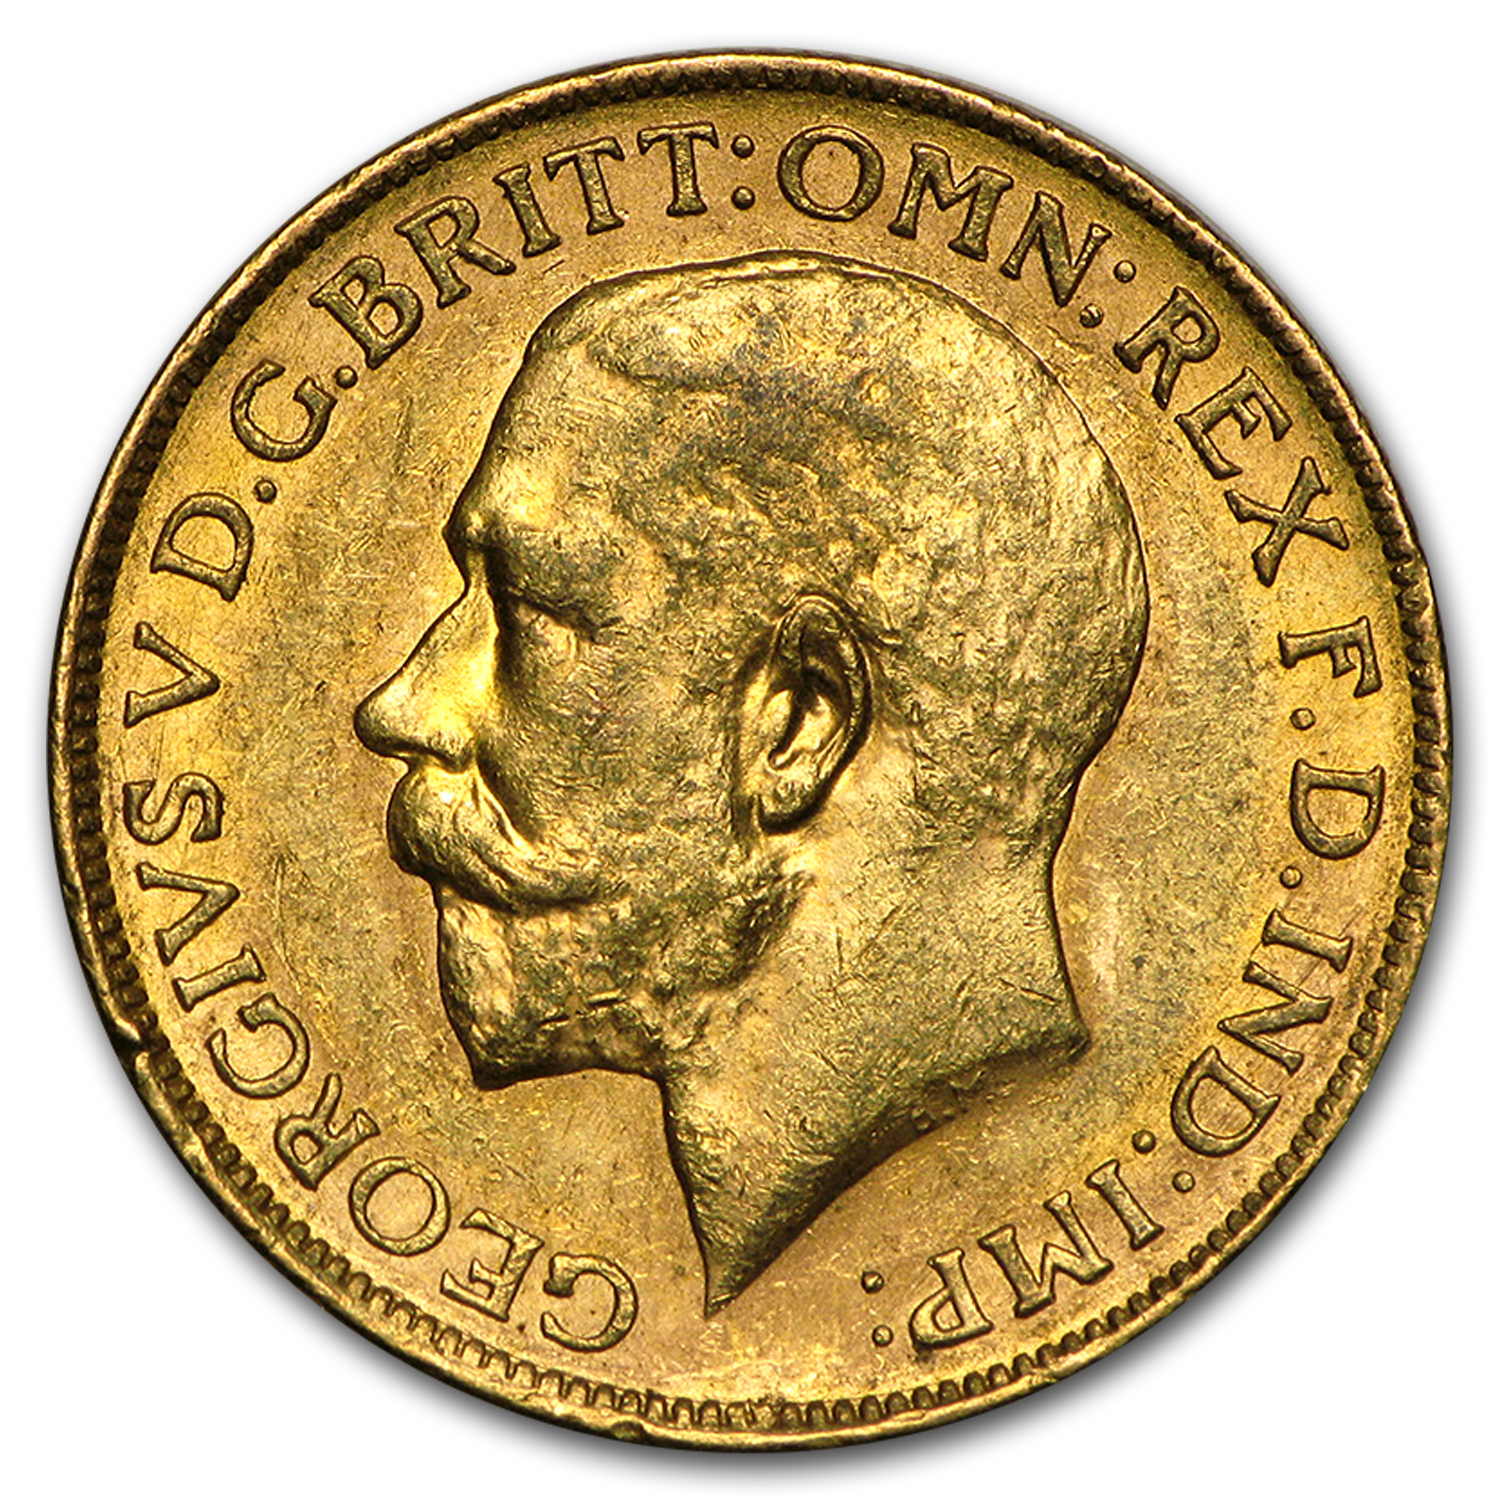 1911-1931-M Australia Gold Sovereign George V Avg Circ